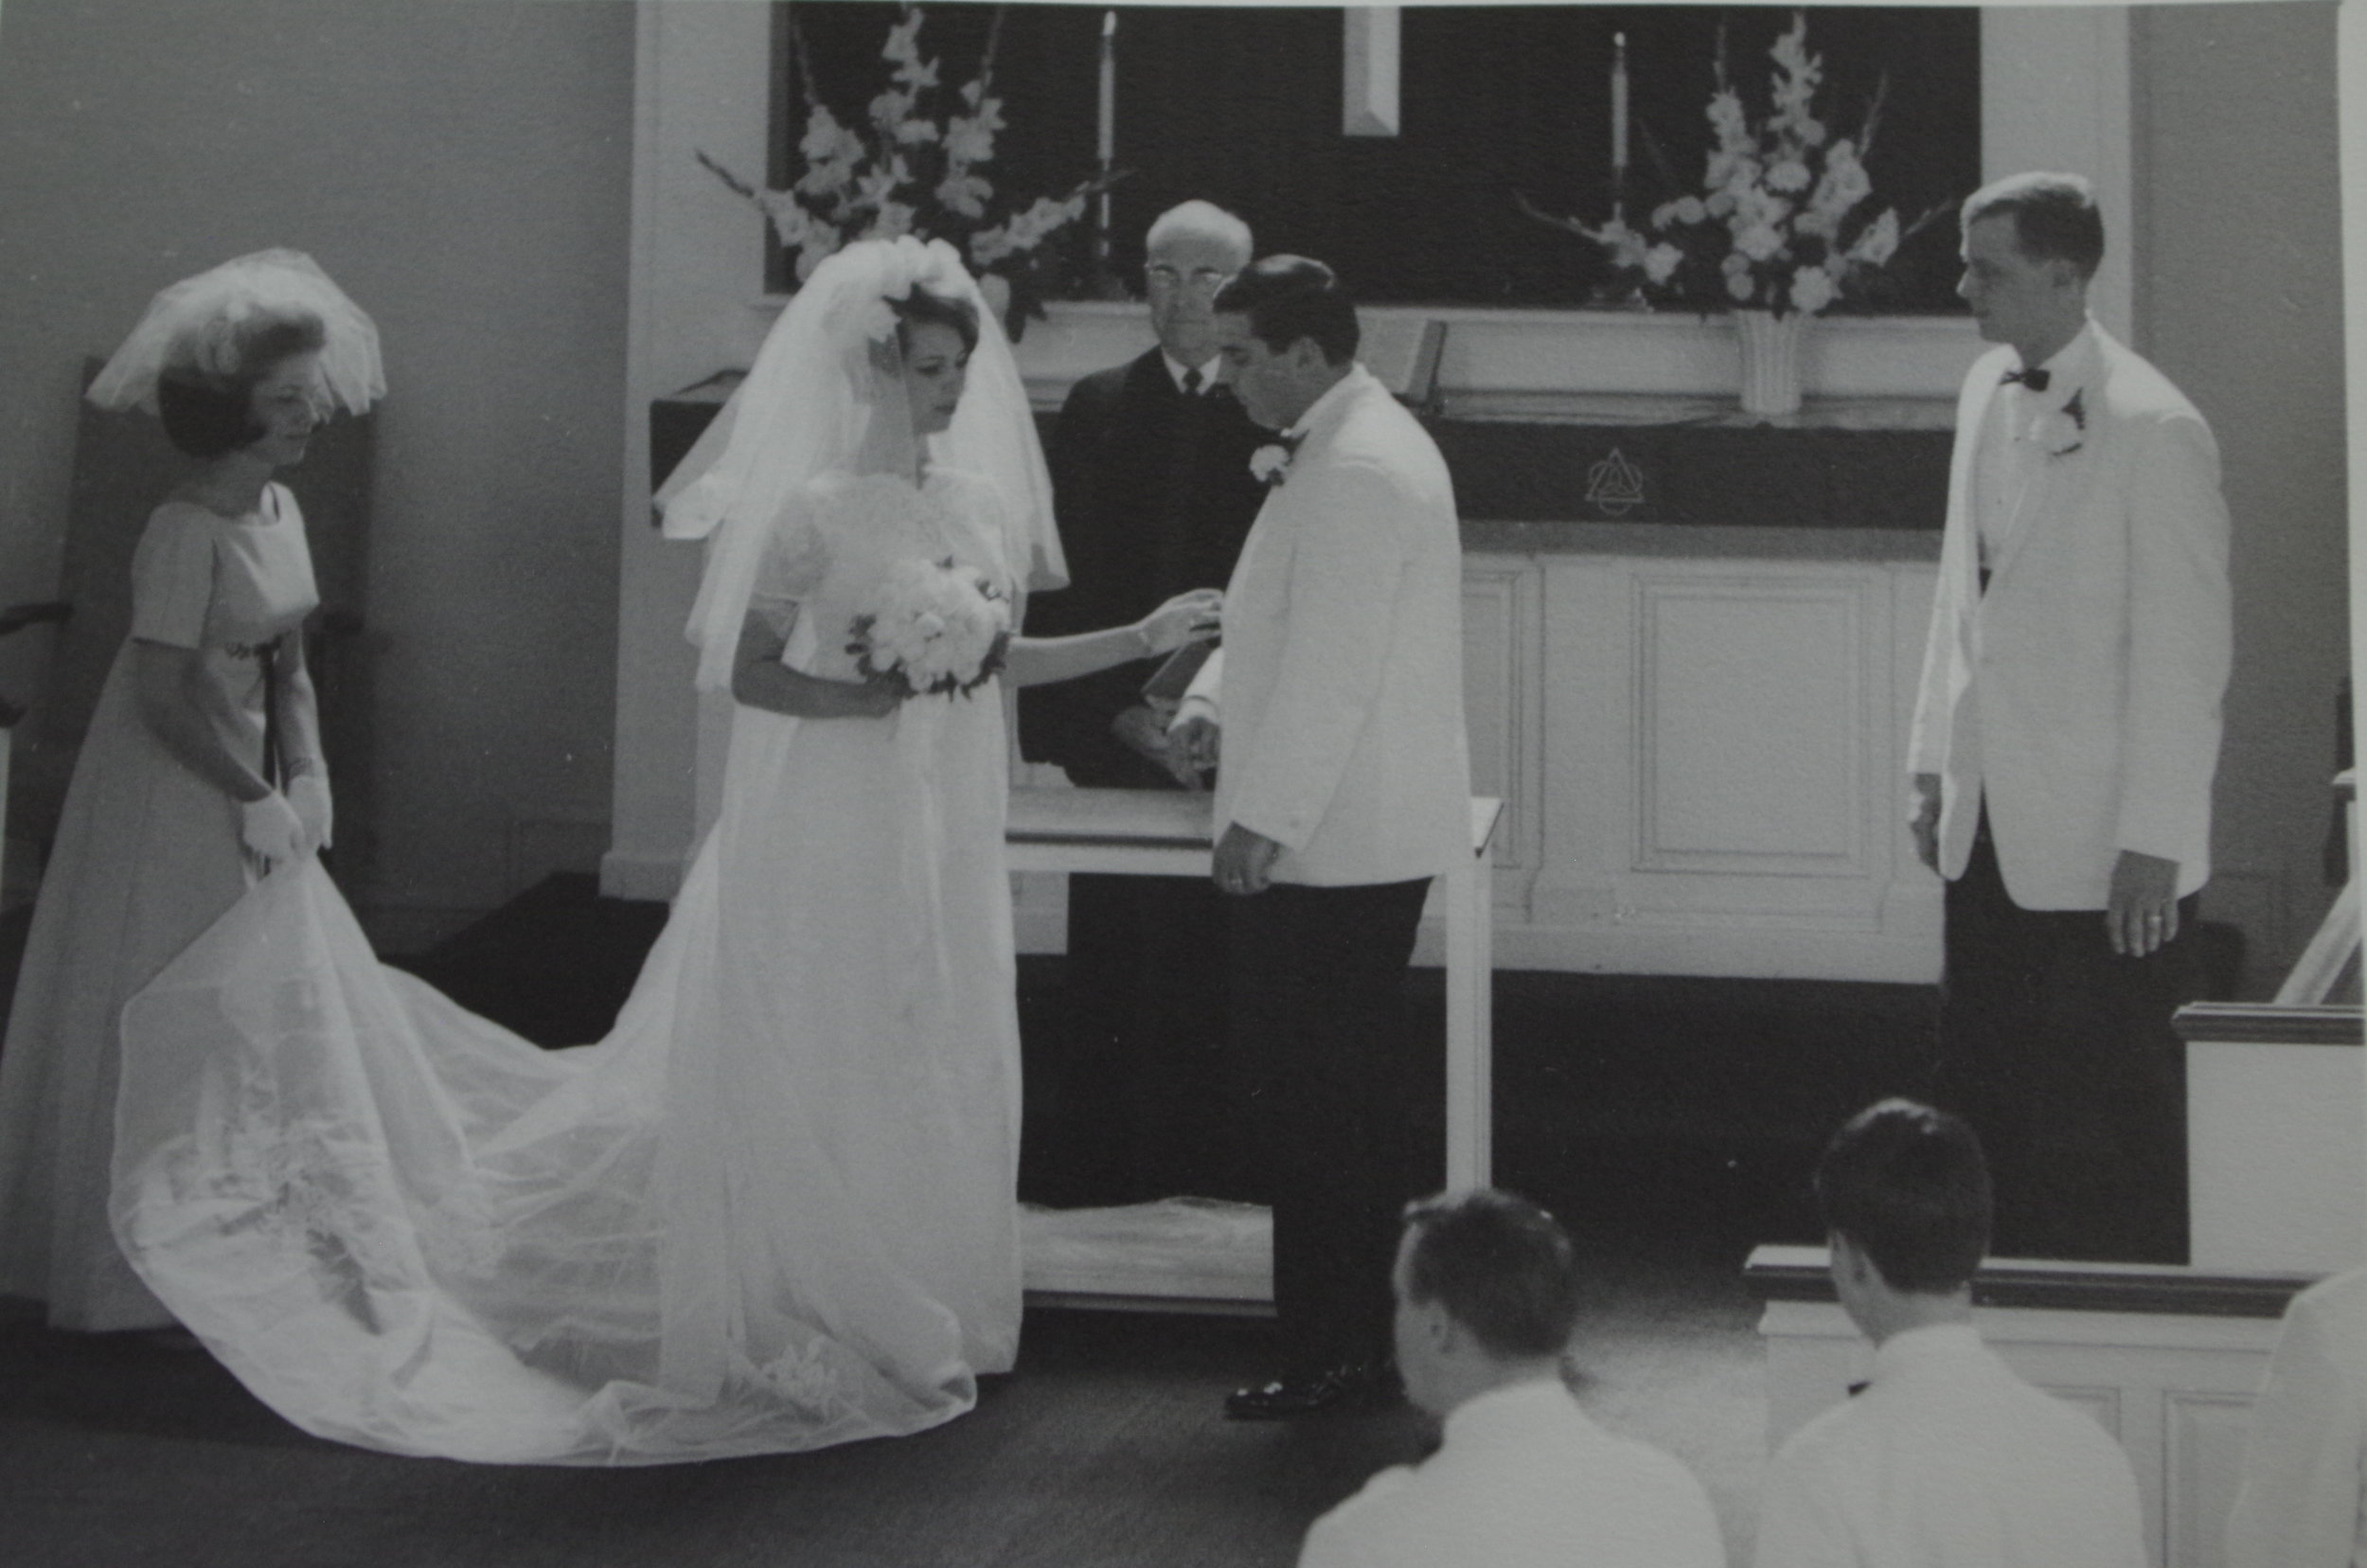 Jill and Peter's Milwaukee Wedding Day, July 1967